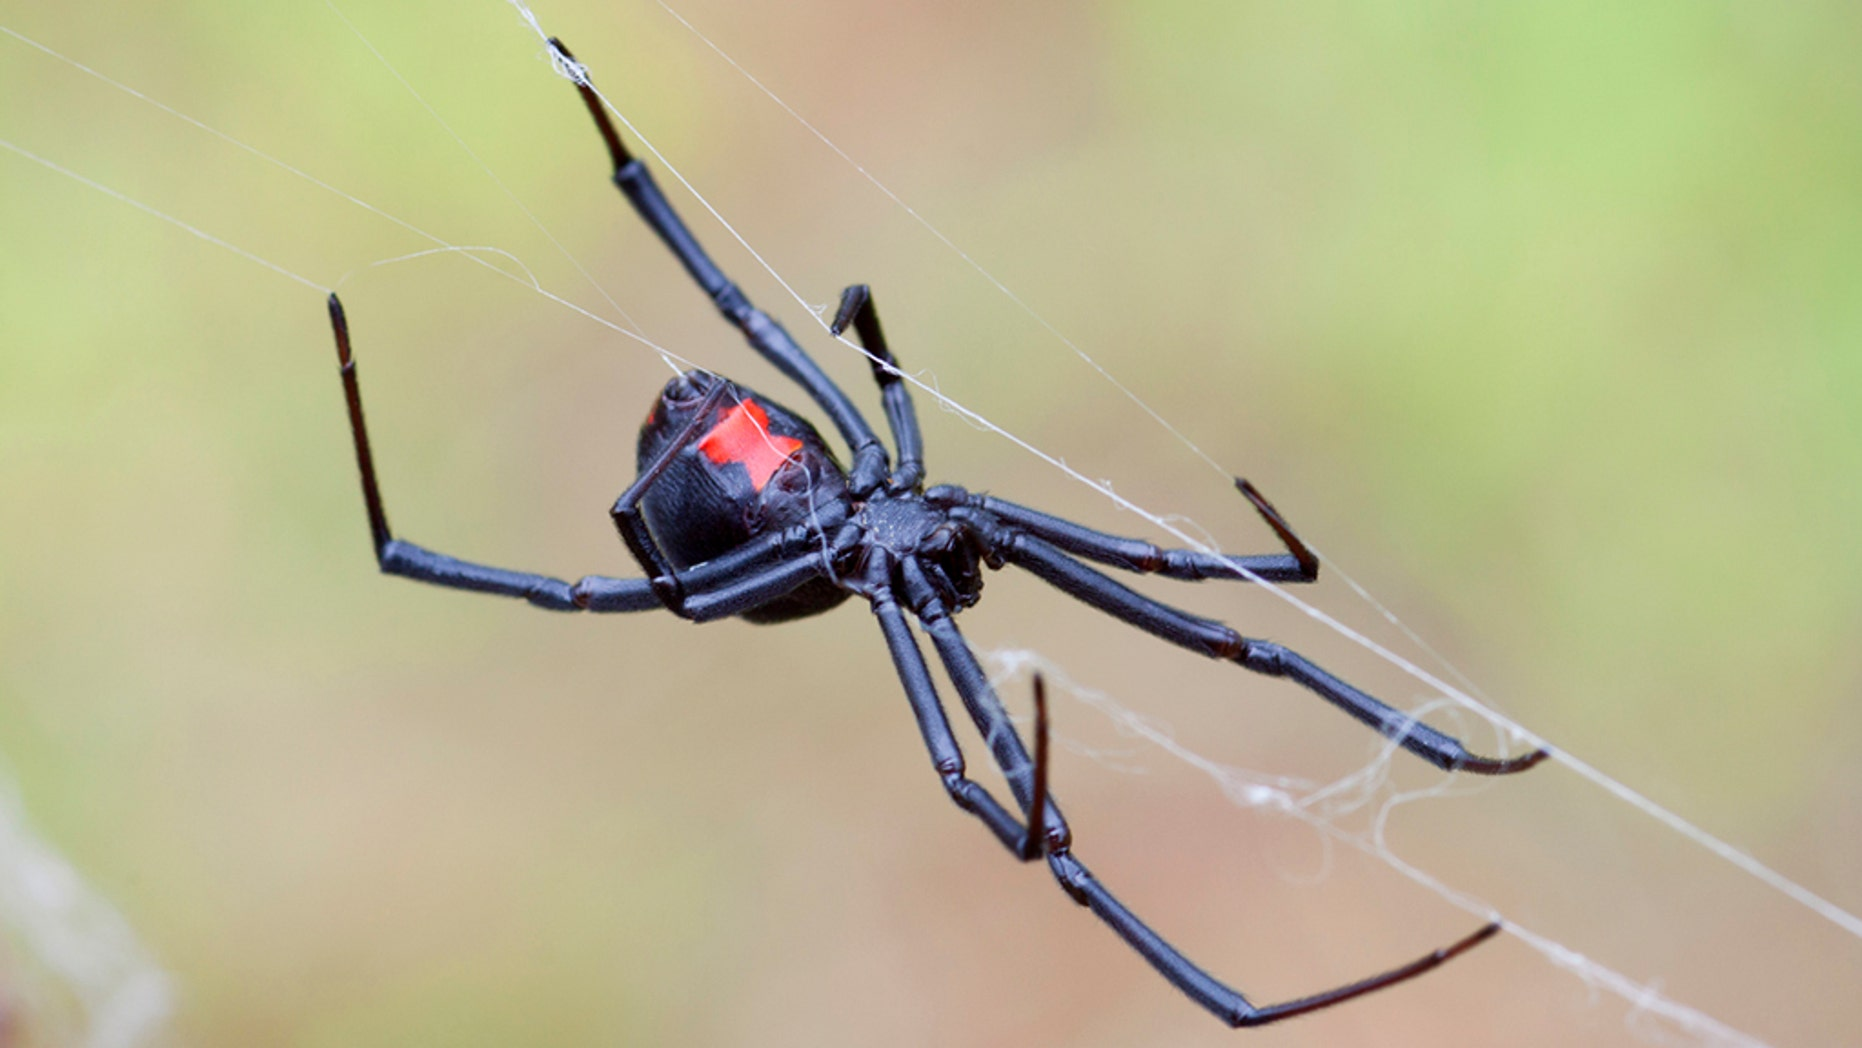 Man sparks fire trying to blowtorch spiders